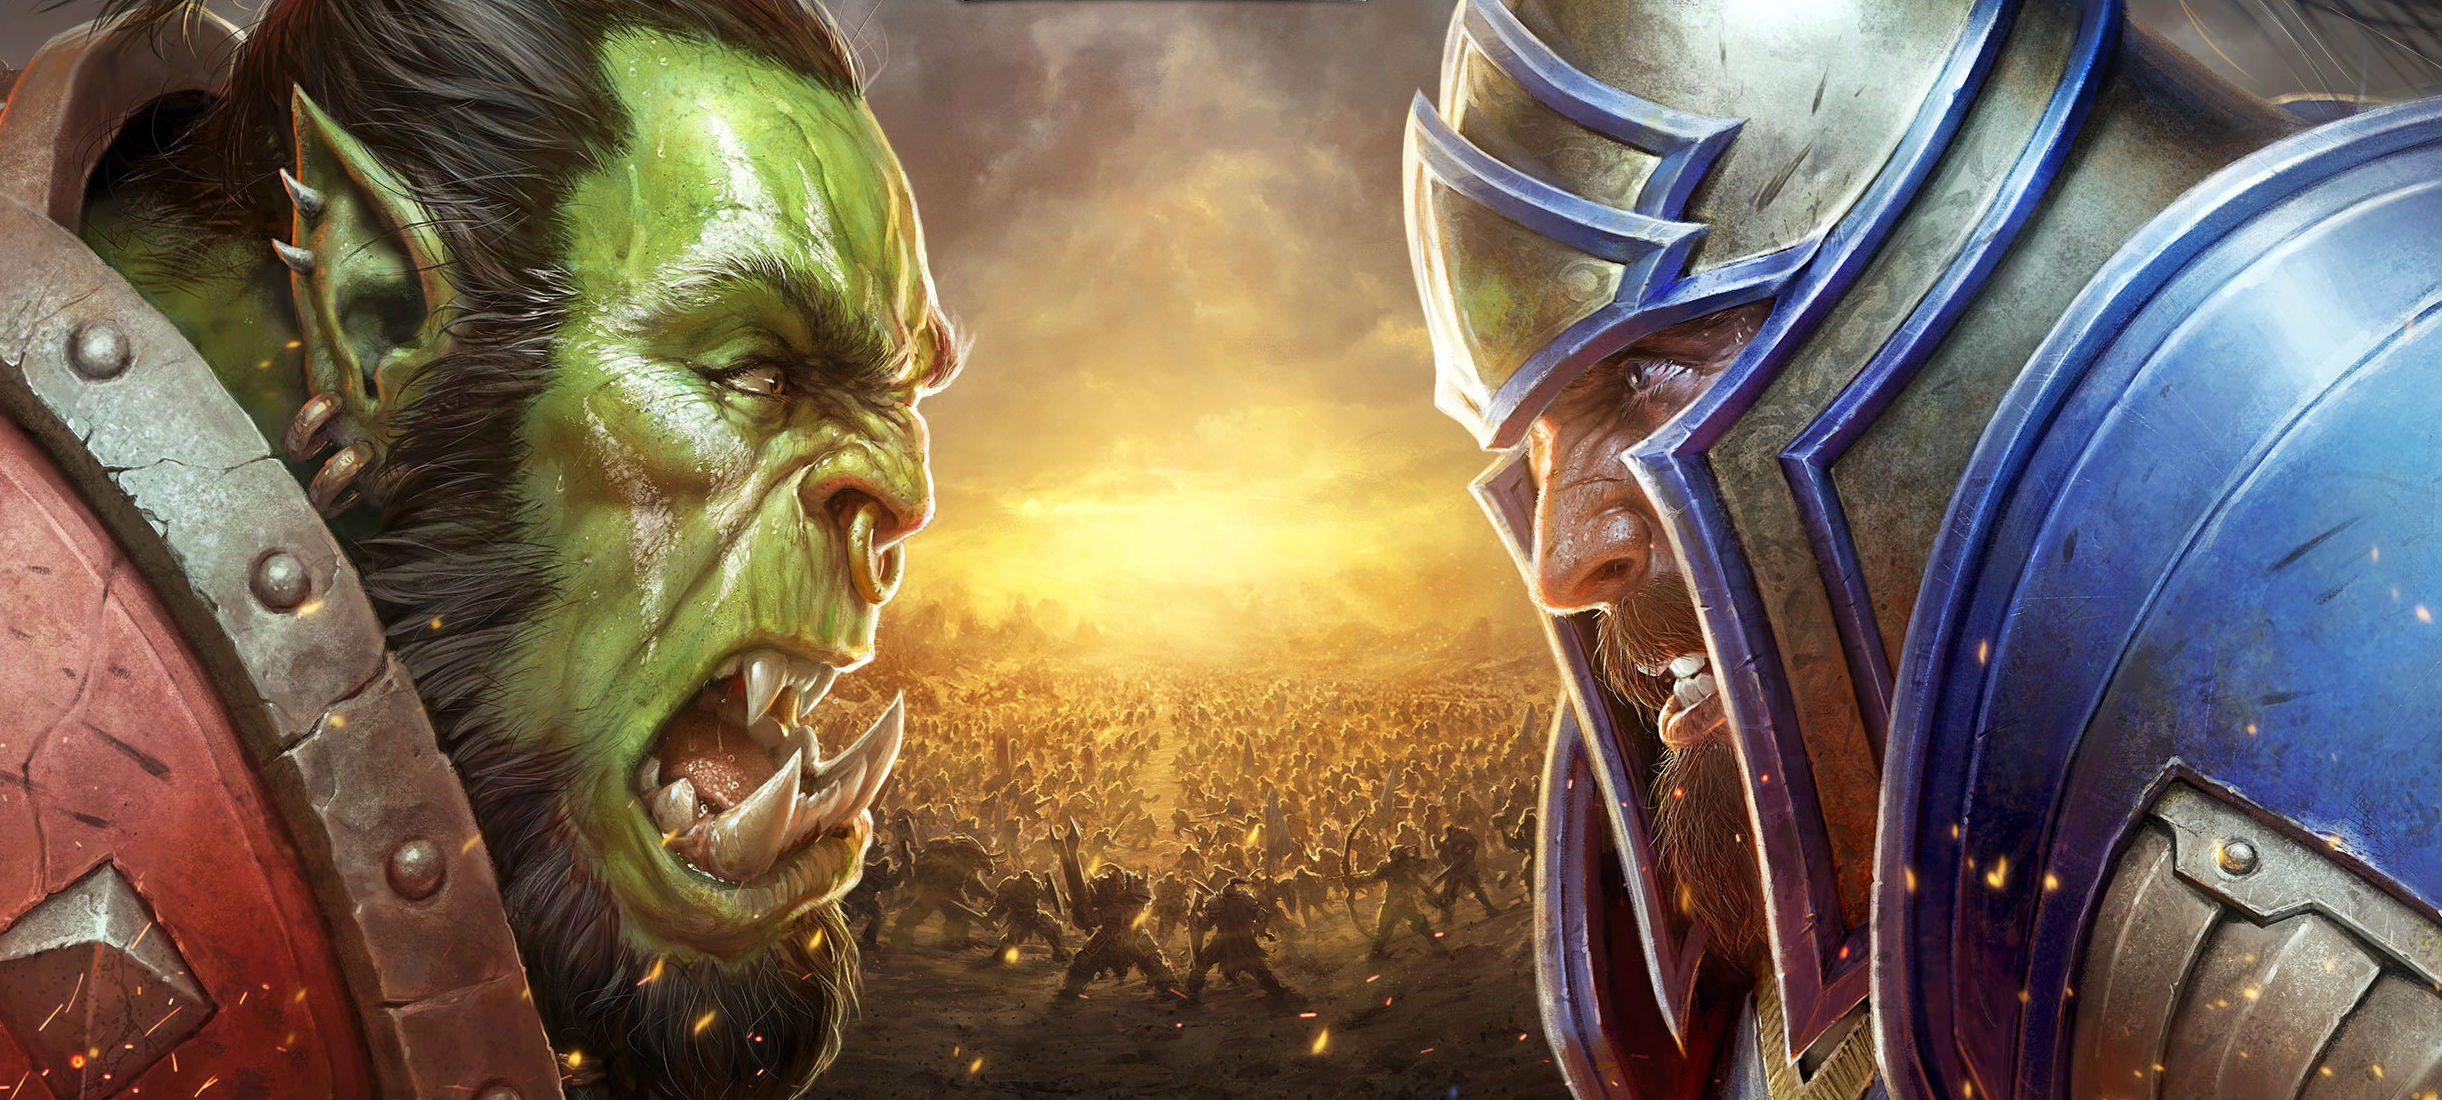 Activision props up World of Warcraft and Call of Duty as top-earners screenshot